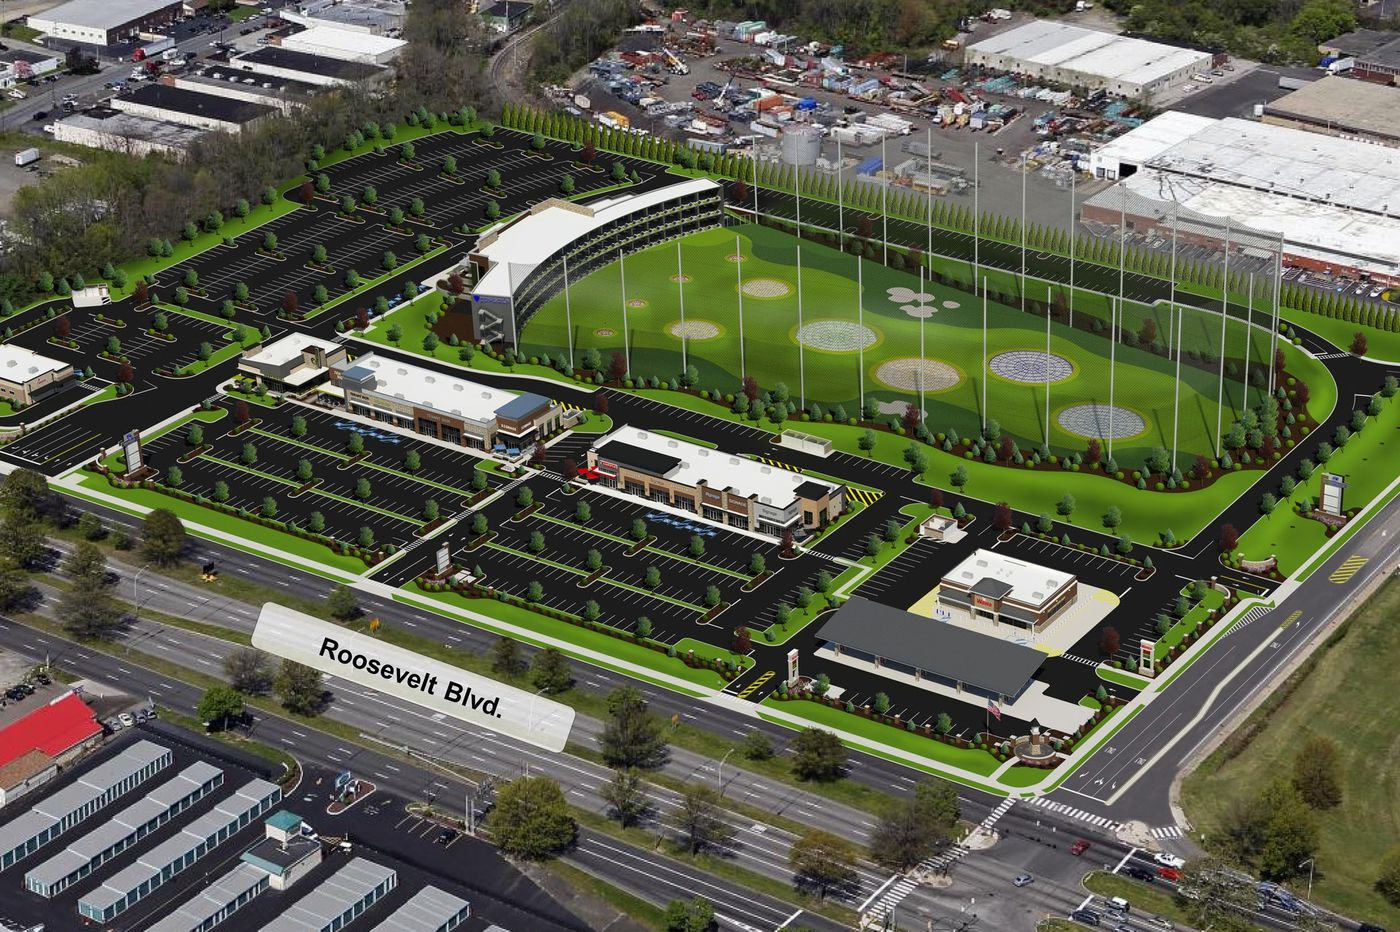 Topgolf entertainment complex planned at former Nabisco site in Northeast Philly